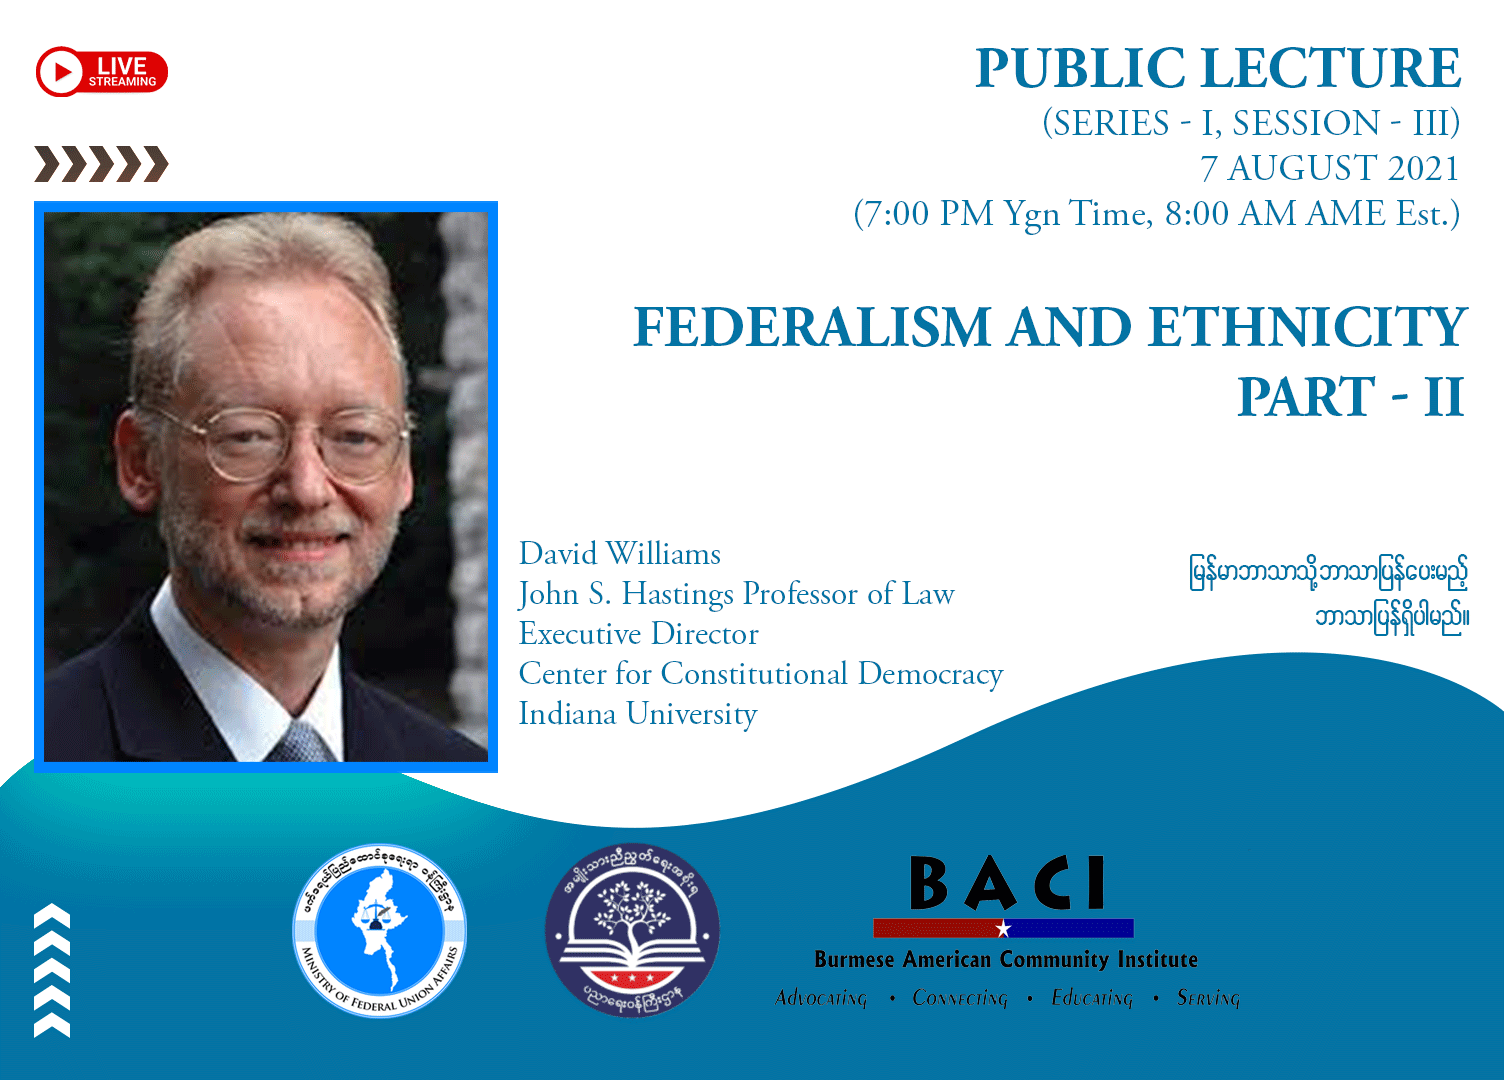 Public Lecture (Series - 1, Session - III)